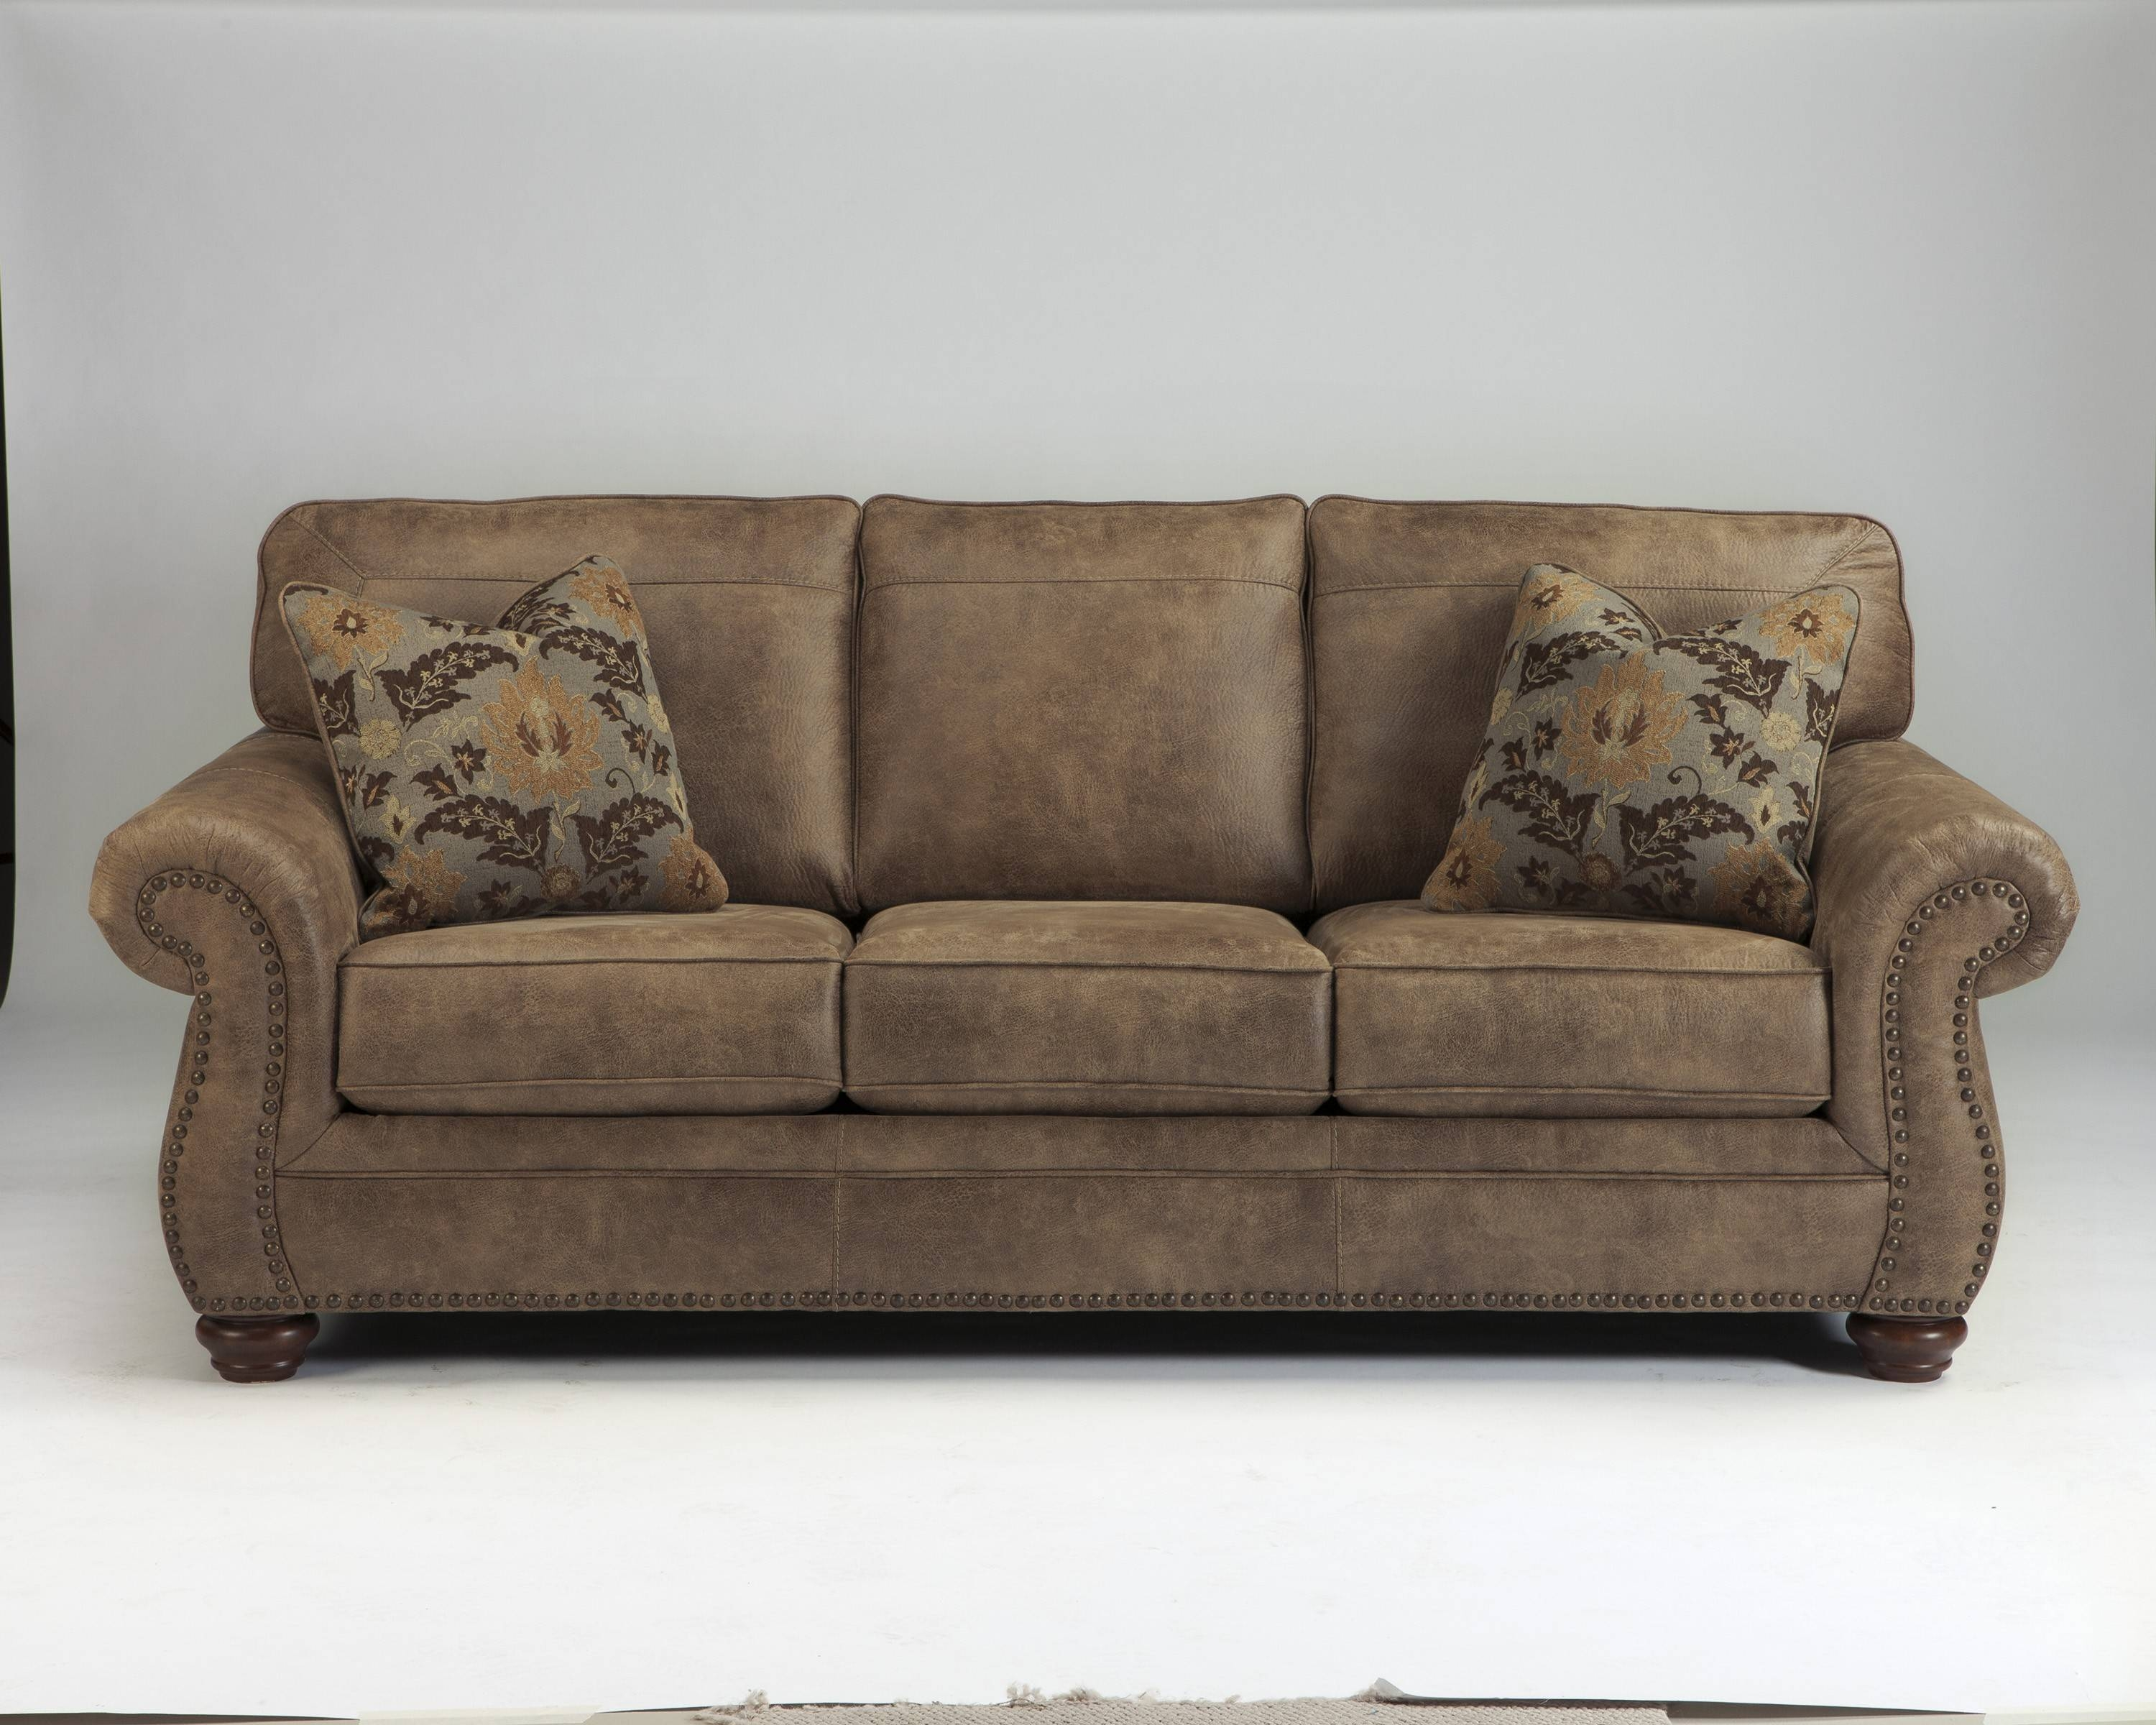 Lovely Fabric sofas for Sale Lovely